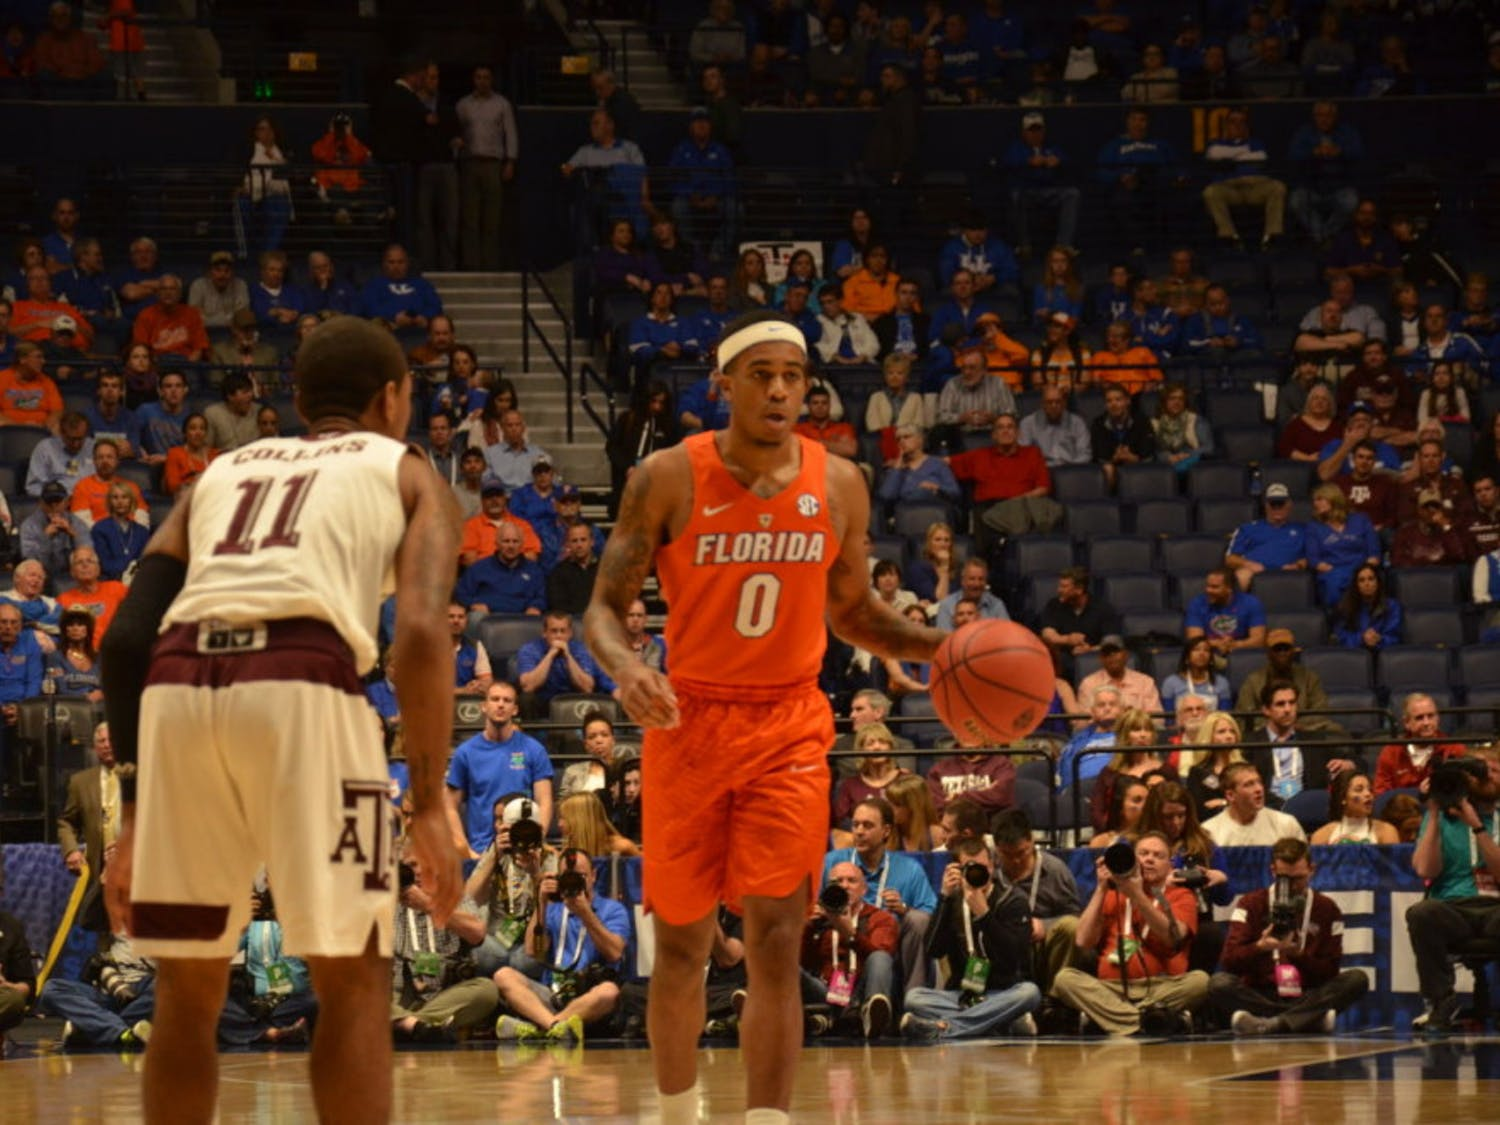 Kasey Hill dribbles the ball down the court during Florida's loss to Texas A&M in the quarterfinals of the SEC Tournament on March 11, 2016, in Nashville, Tennessee.